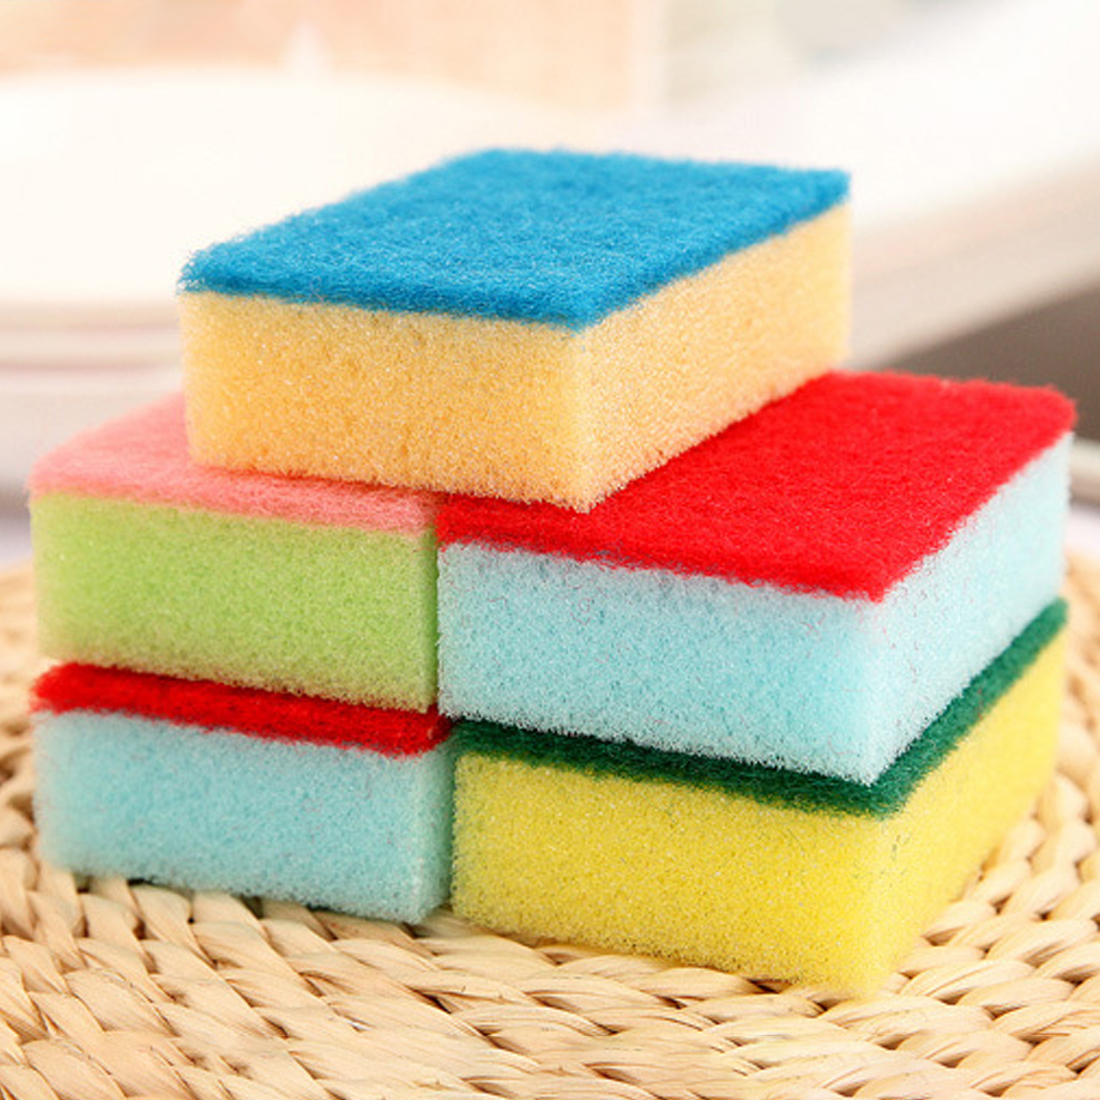 New Arrival Nano Sponge Magic Eraser For Removing Rust Cleaning Cotton Emery Sponge Kitchen Supplies Descaling Clean Rub Pot